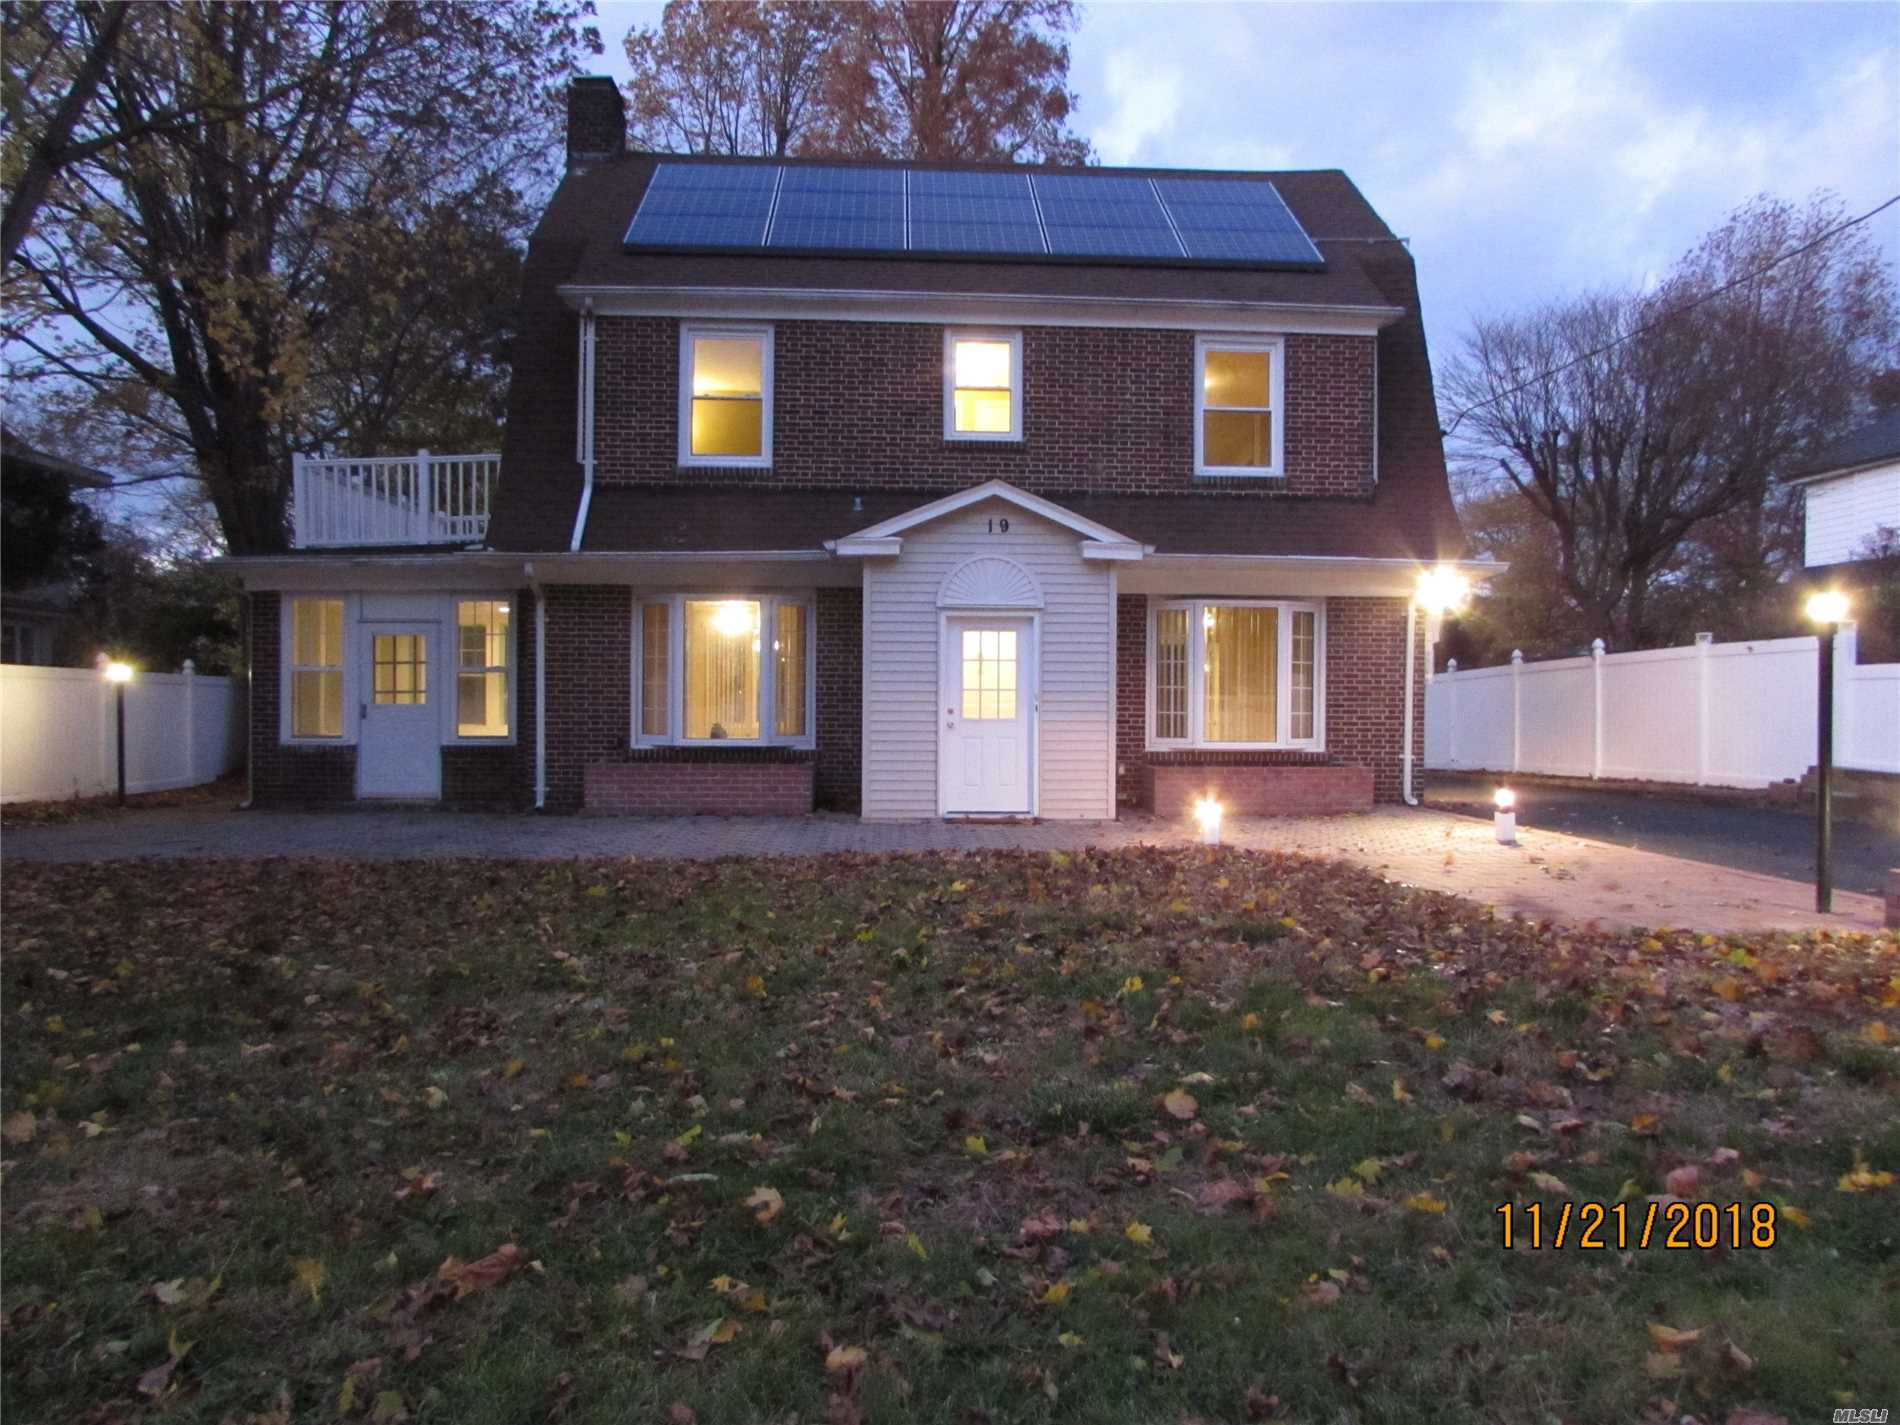 Spacious Charming Dutch Colonial Home With Updated Kitchen & Baths, Hard Wood Floors Throughout And A Stone Fireplace In The Living Room. Conveniently Close To The Downtown Area In Glen Cove, Near Shopping, Lirr & Hospital. Beach And Golf Course Privileges.